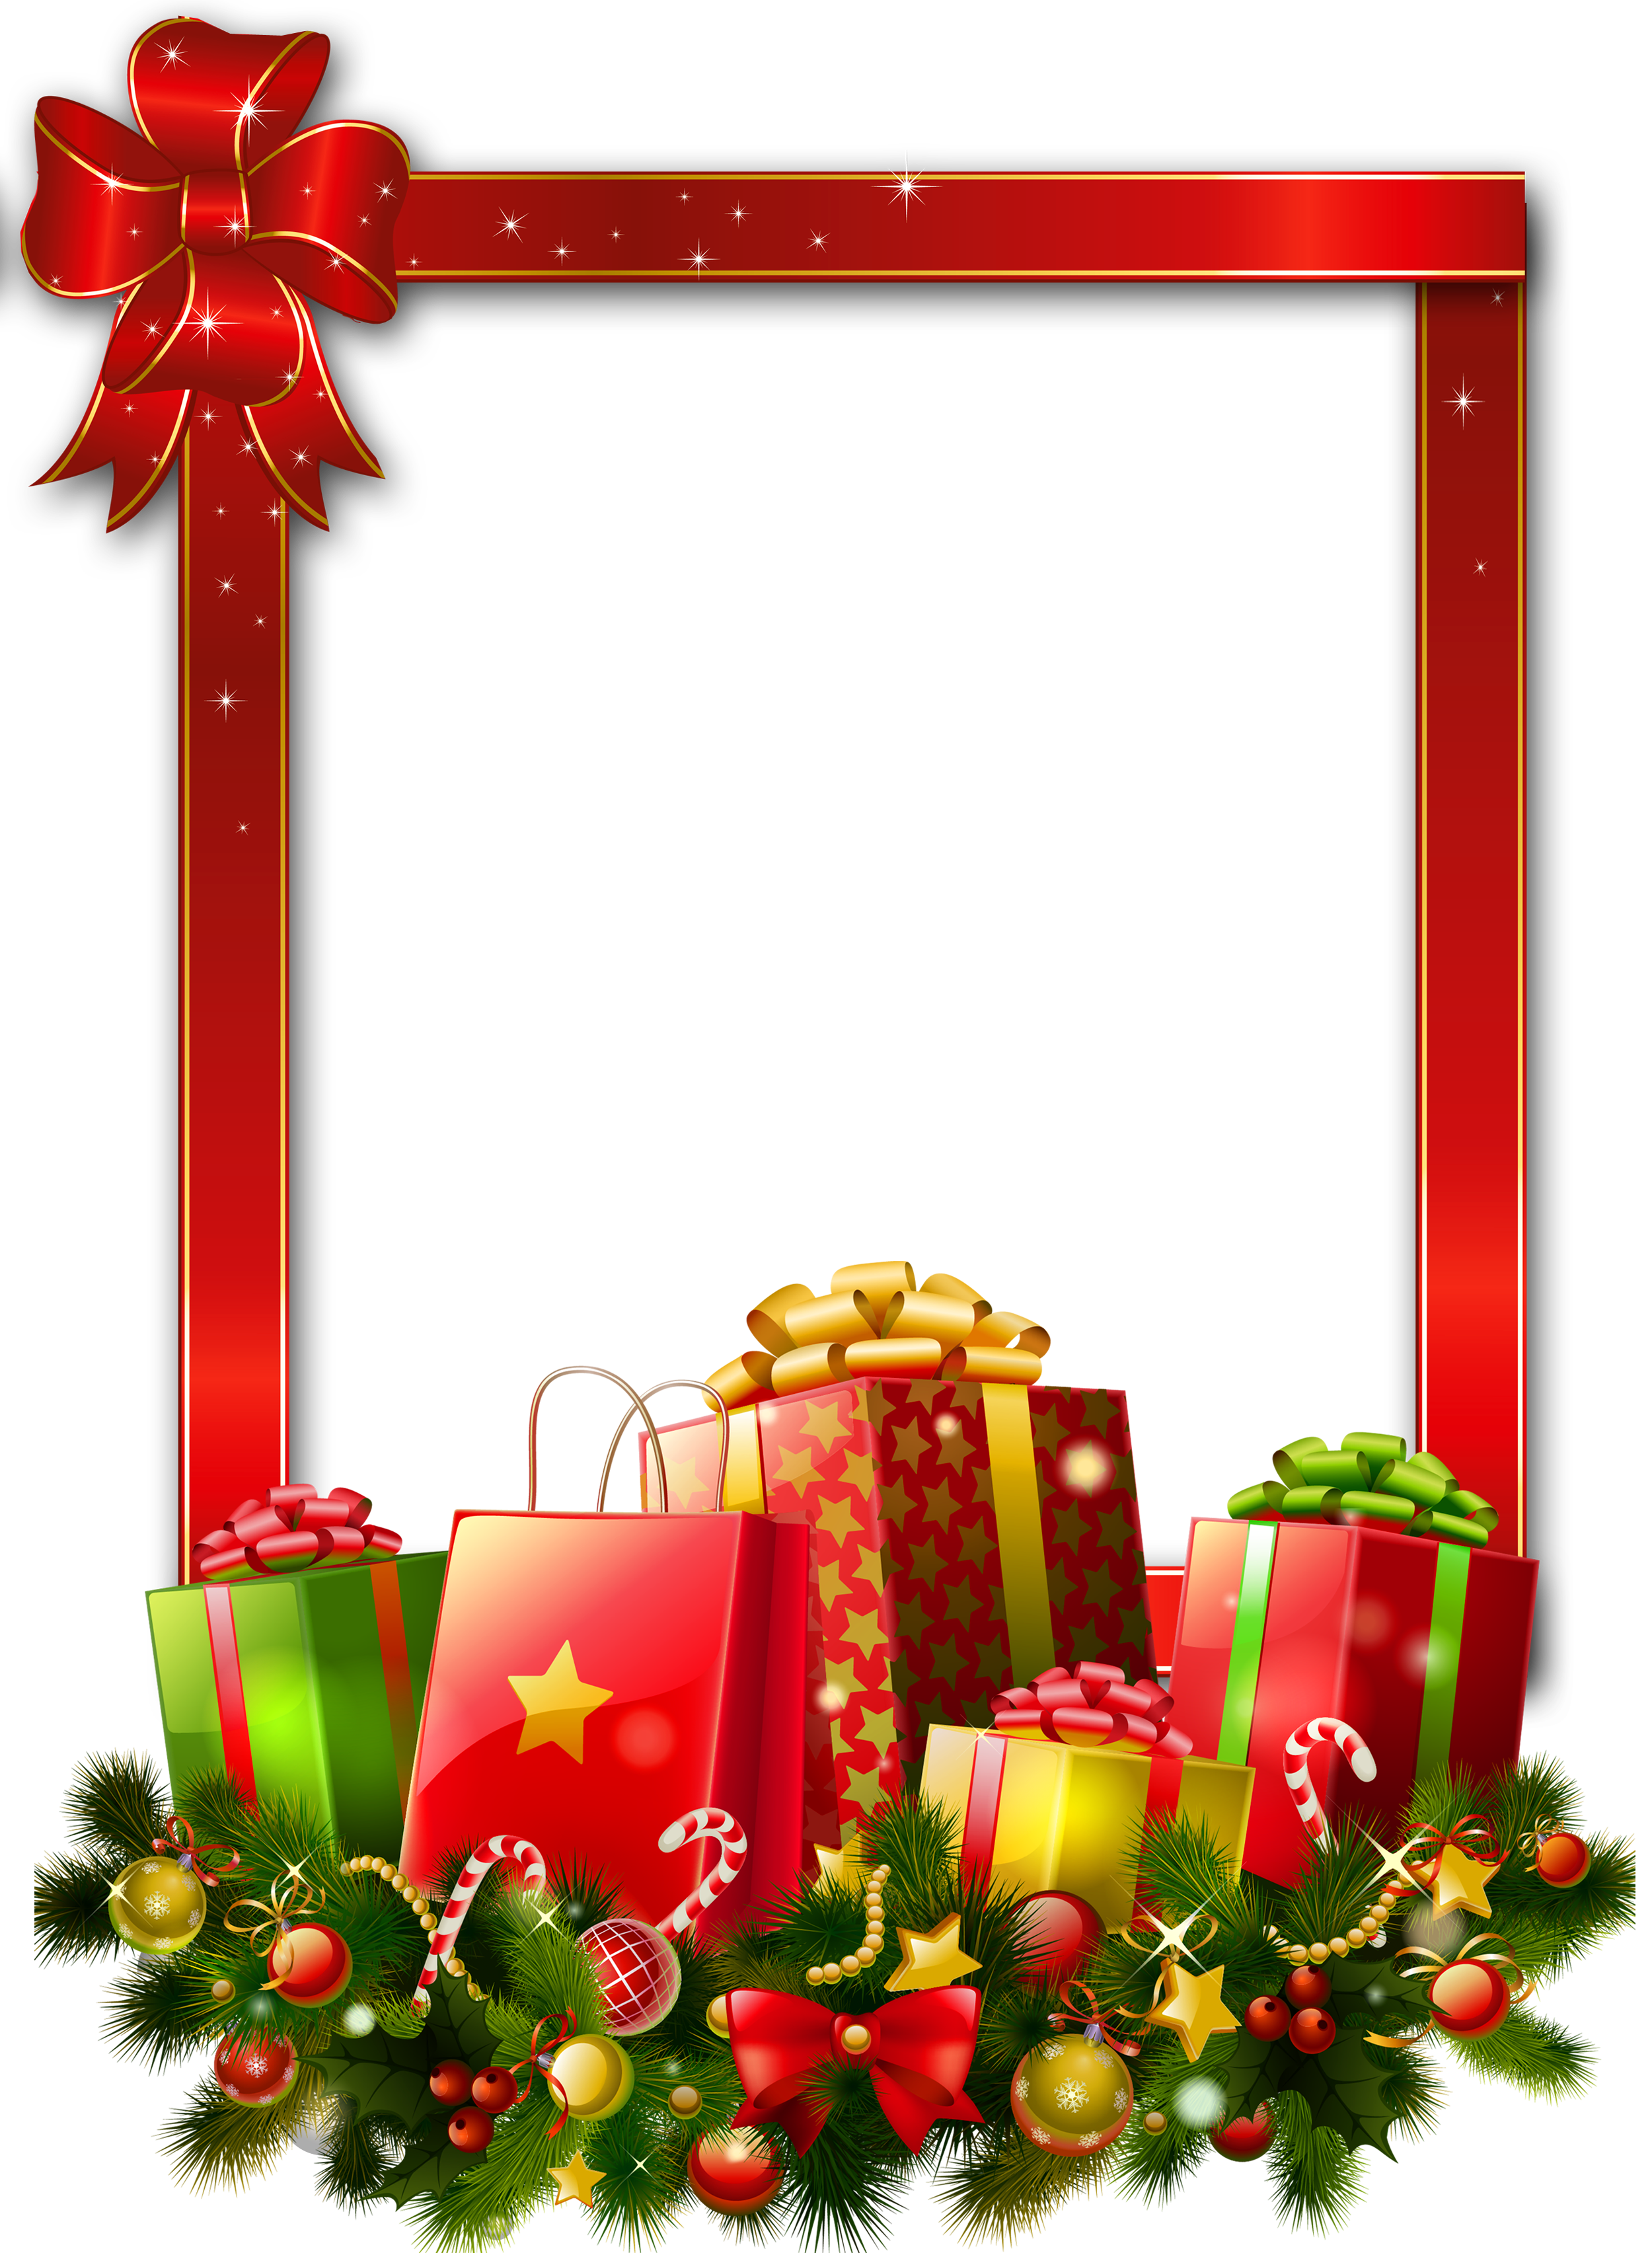 Red Large Christmas Transparent PNG Photo Frame with Presents ...